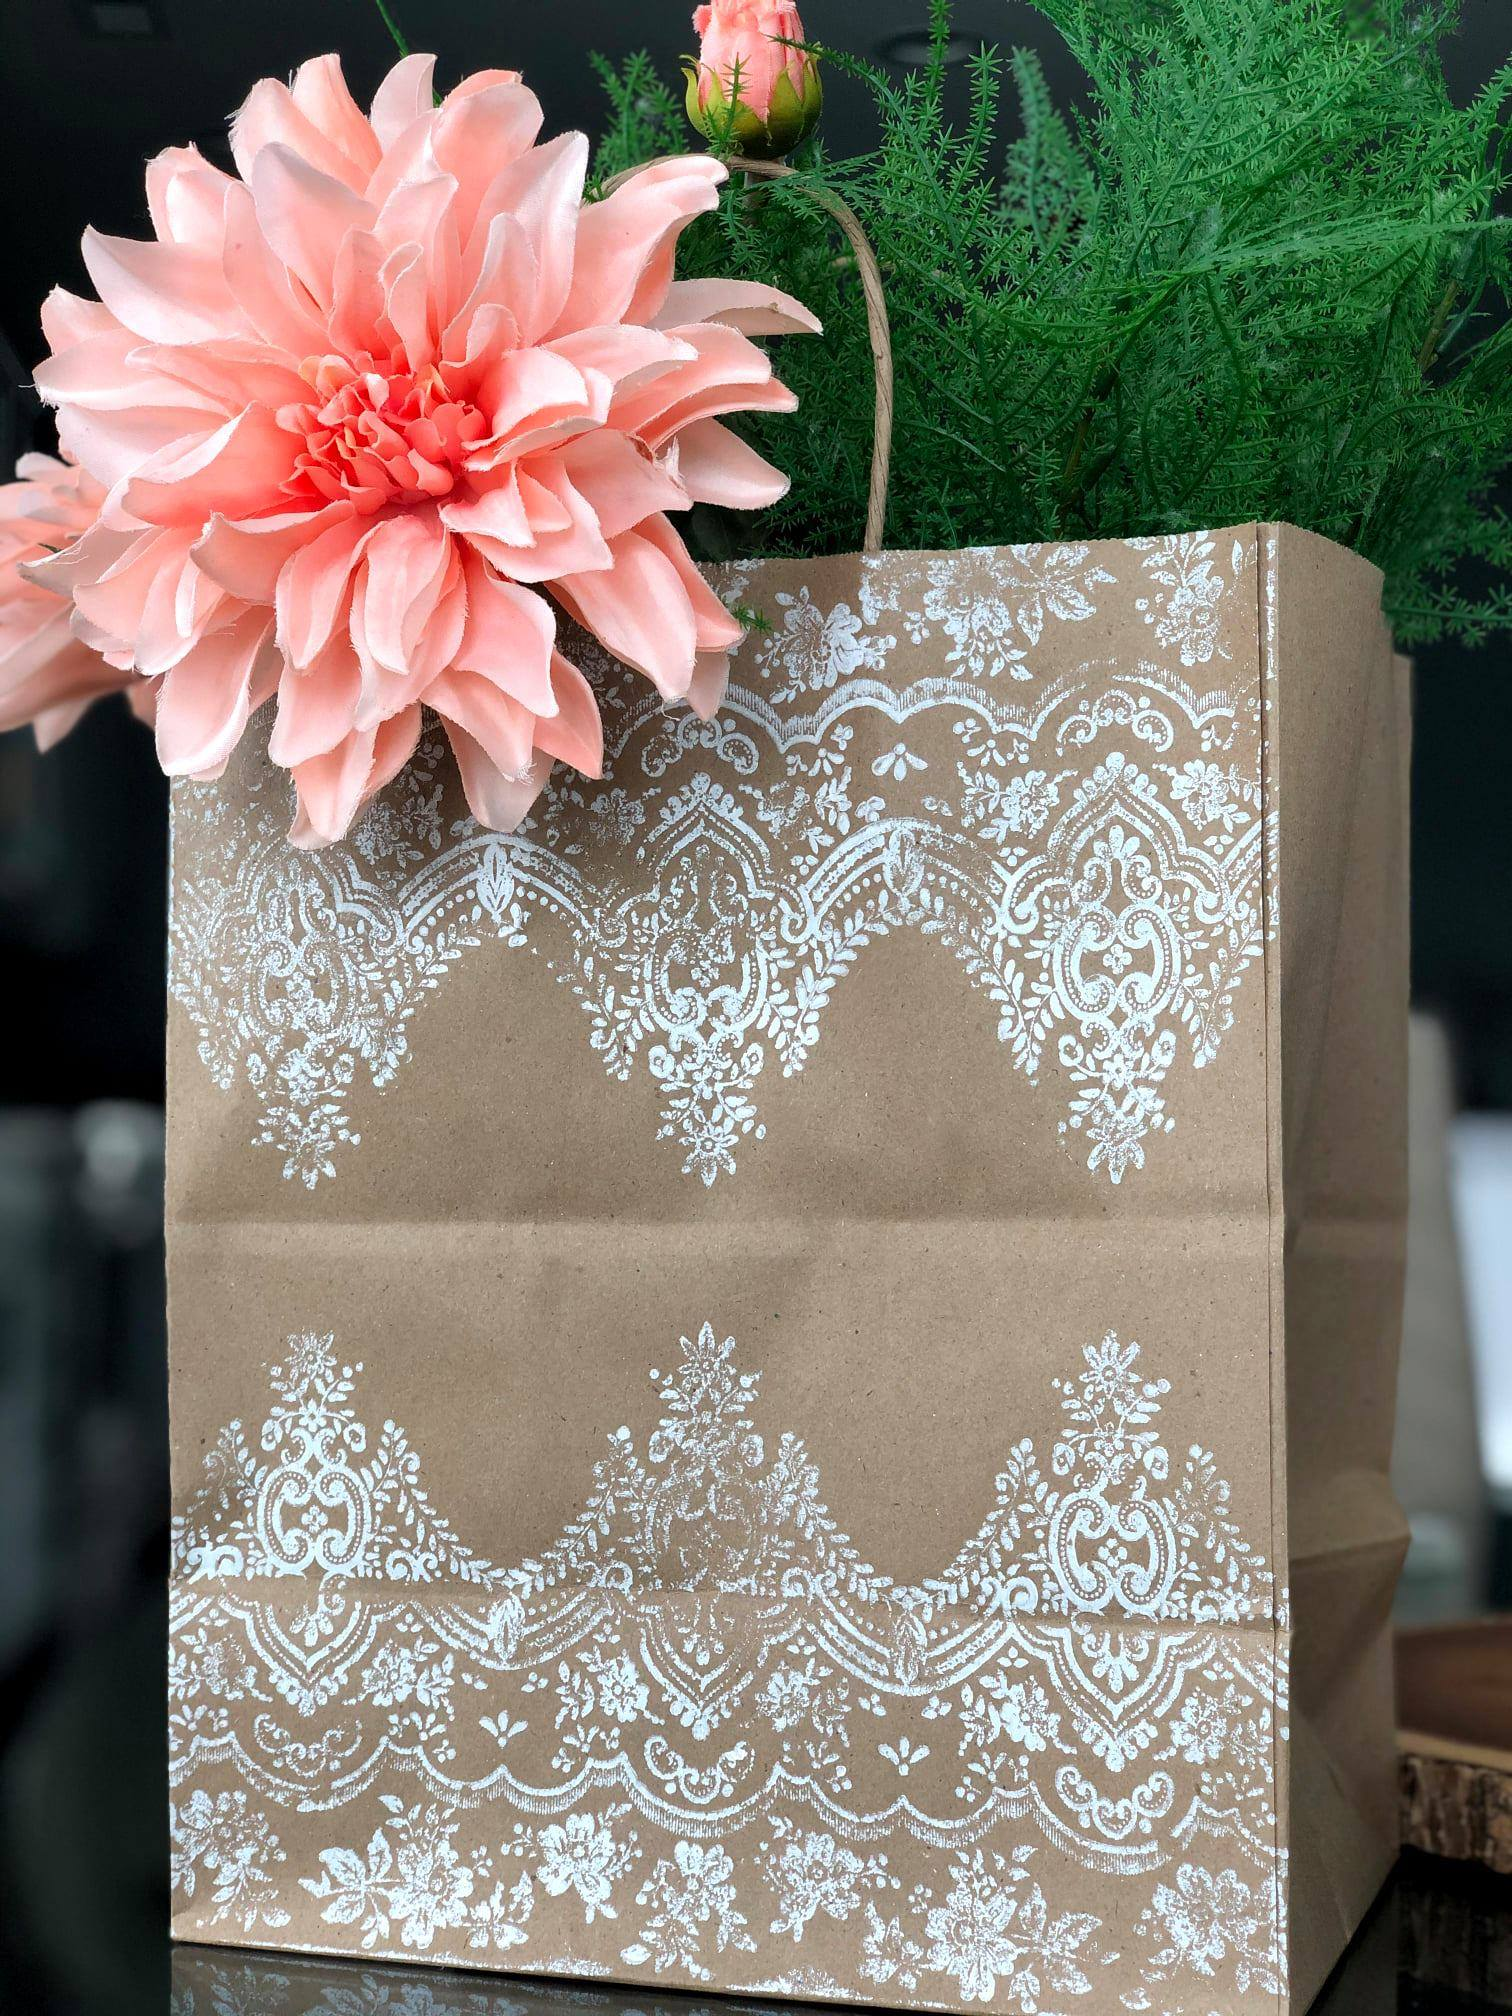 A Kraft bag with a white stamped pattern on the outside. Sticking out of the bag is a large pink flower and some greens.